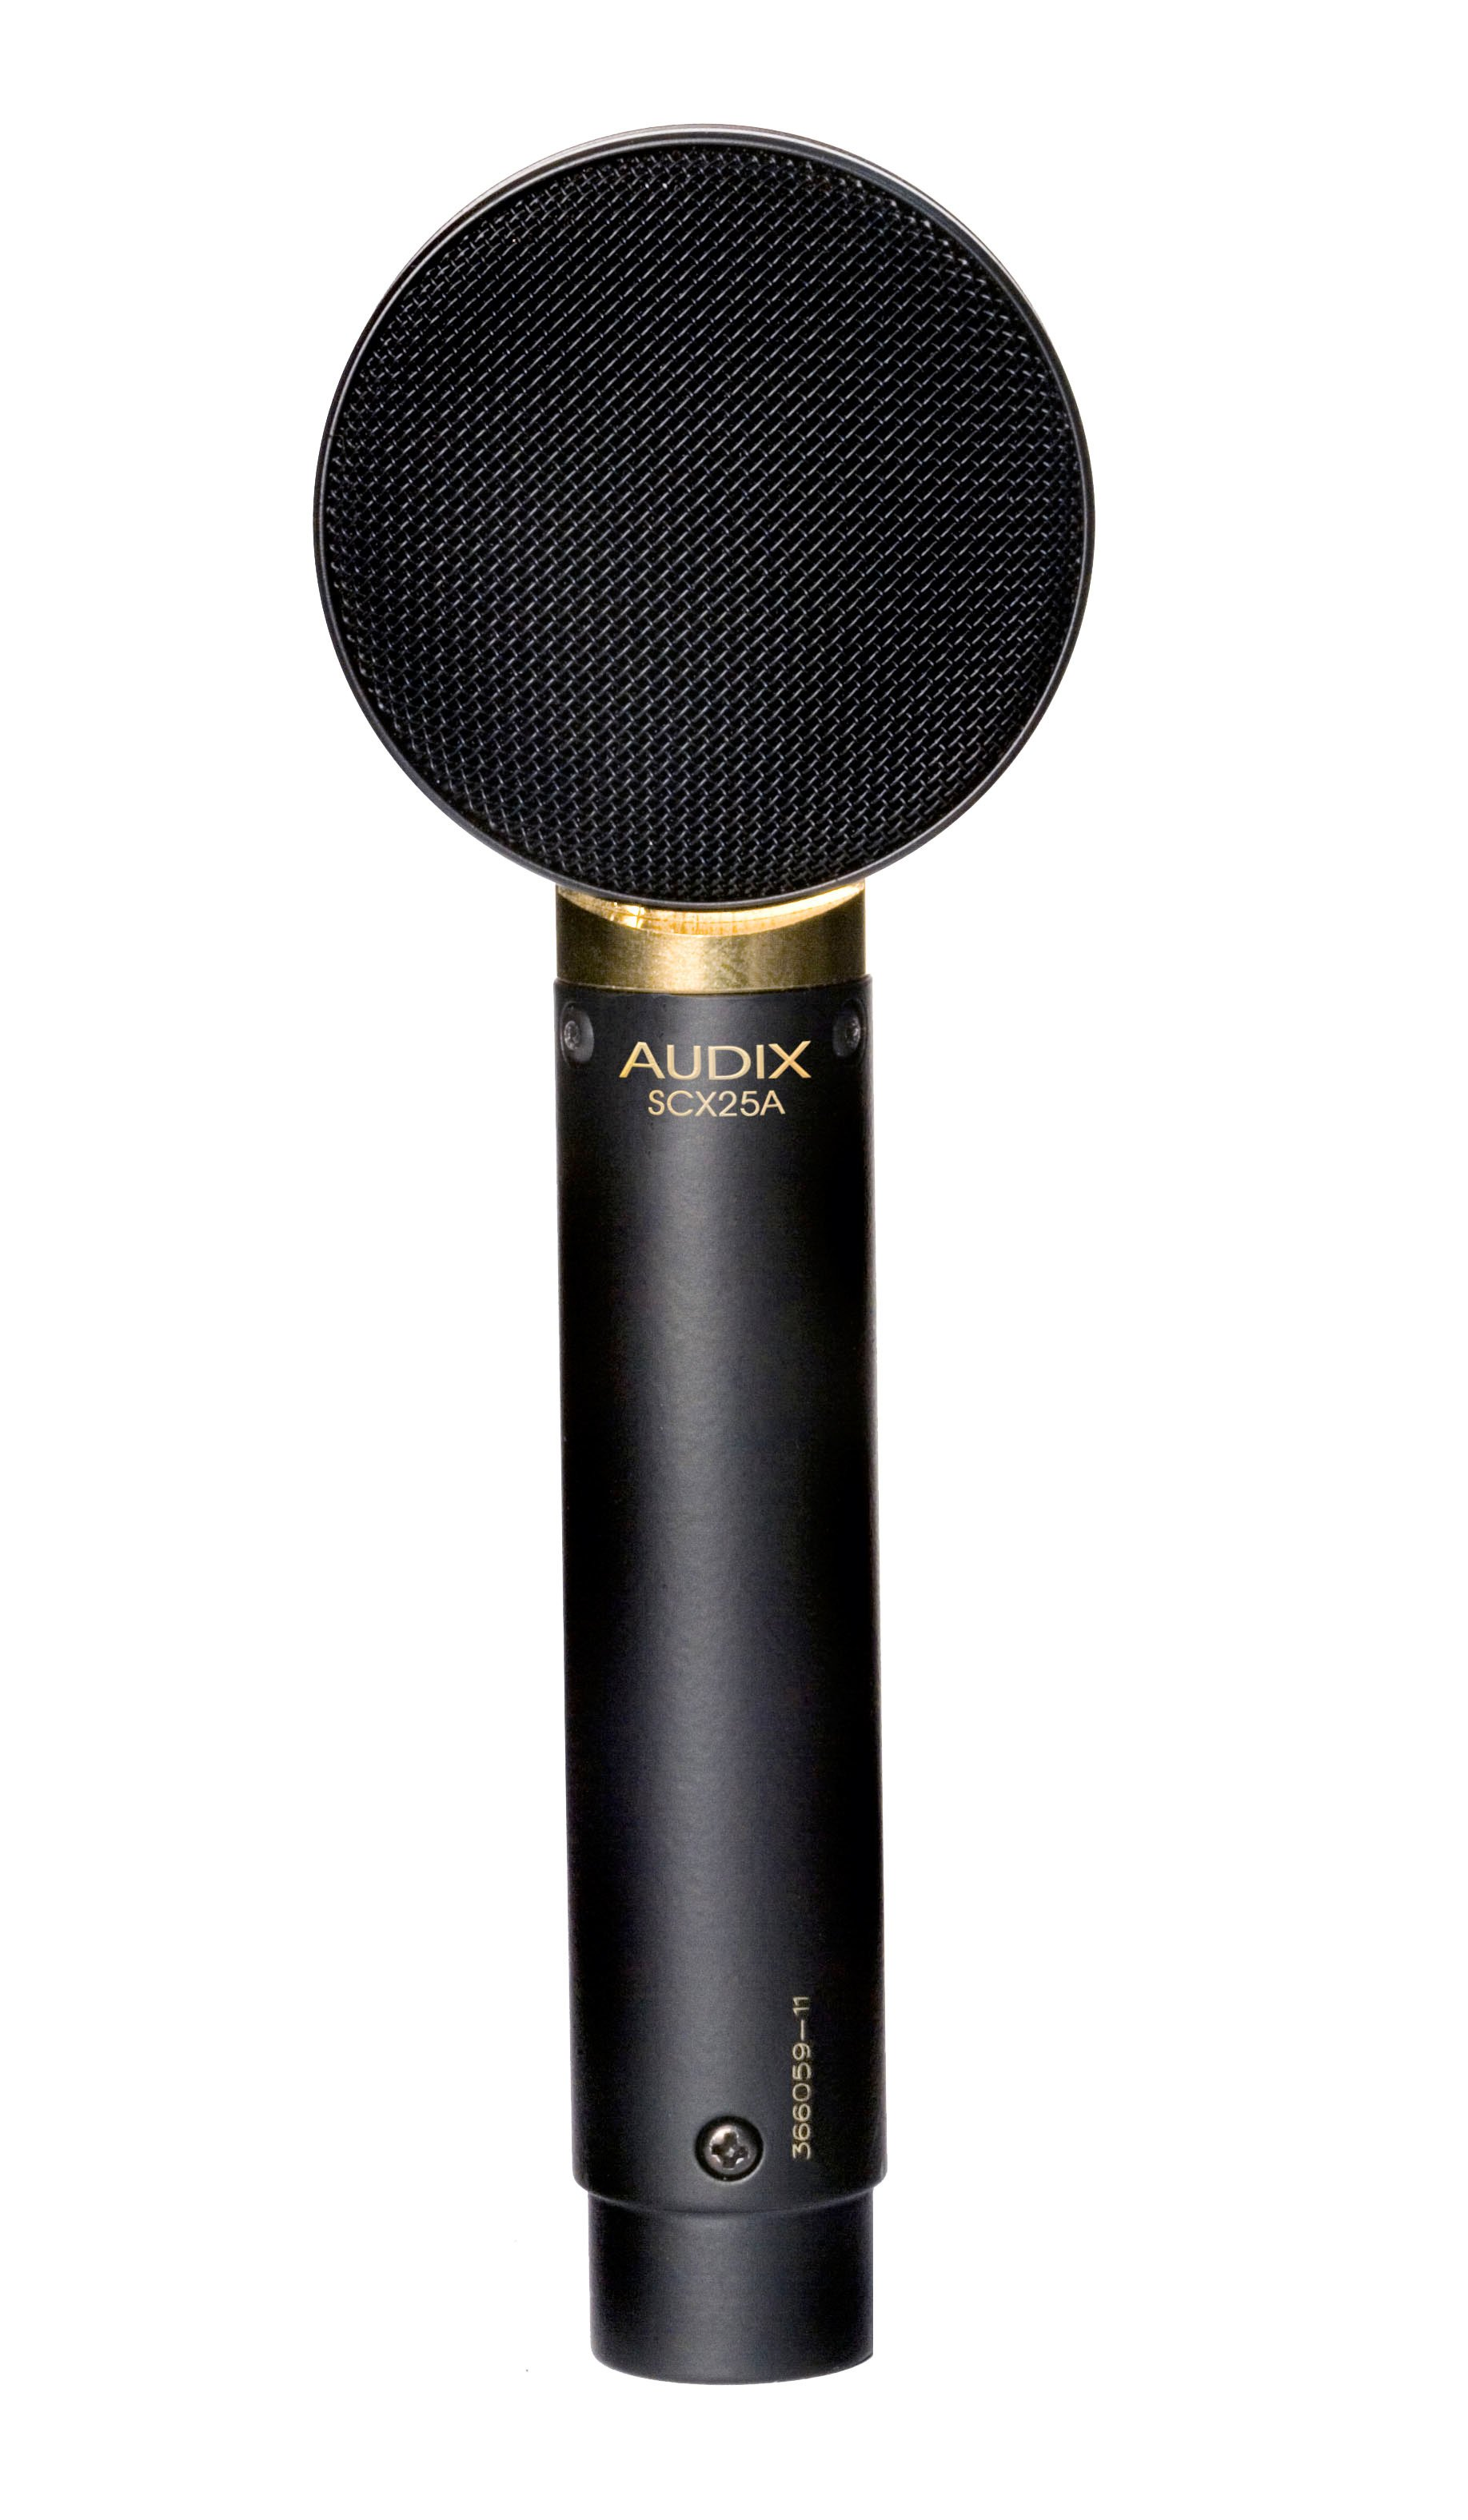 Large Diaphragm Condenser Microphone, Cardioid, Shock-Mounted Capsule, Low Profile Body